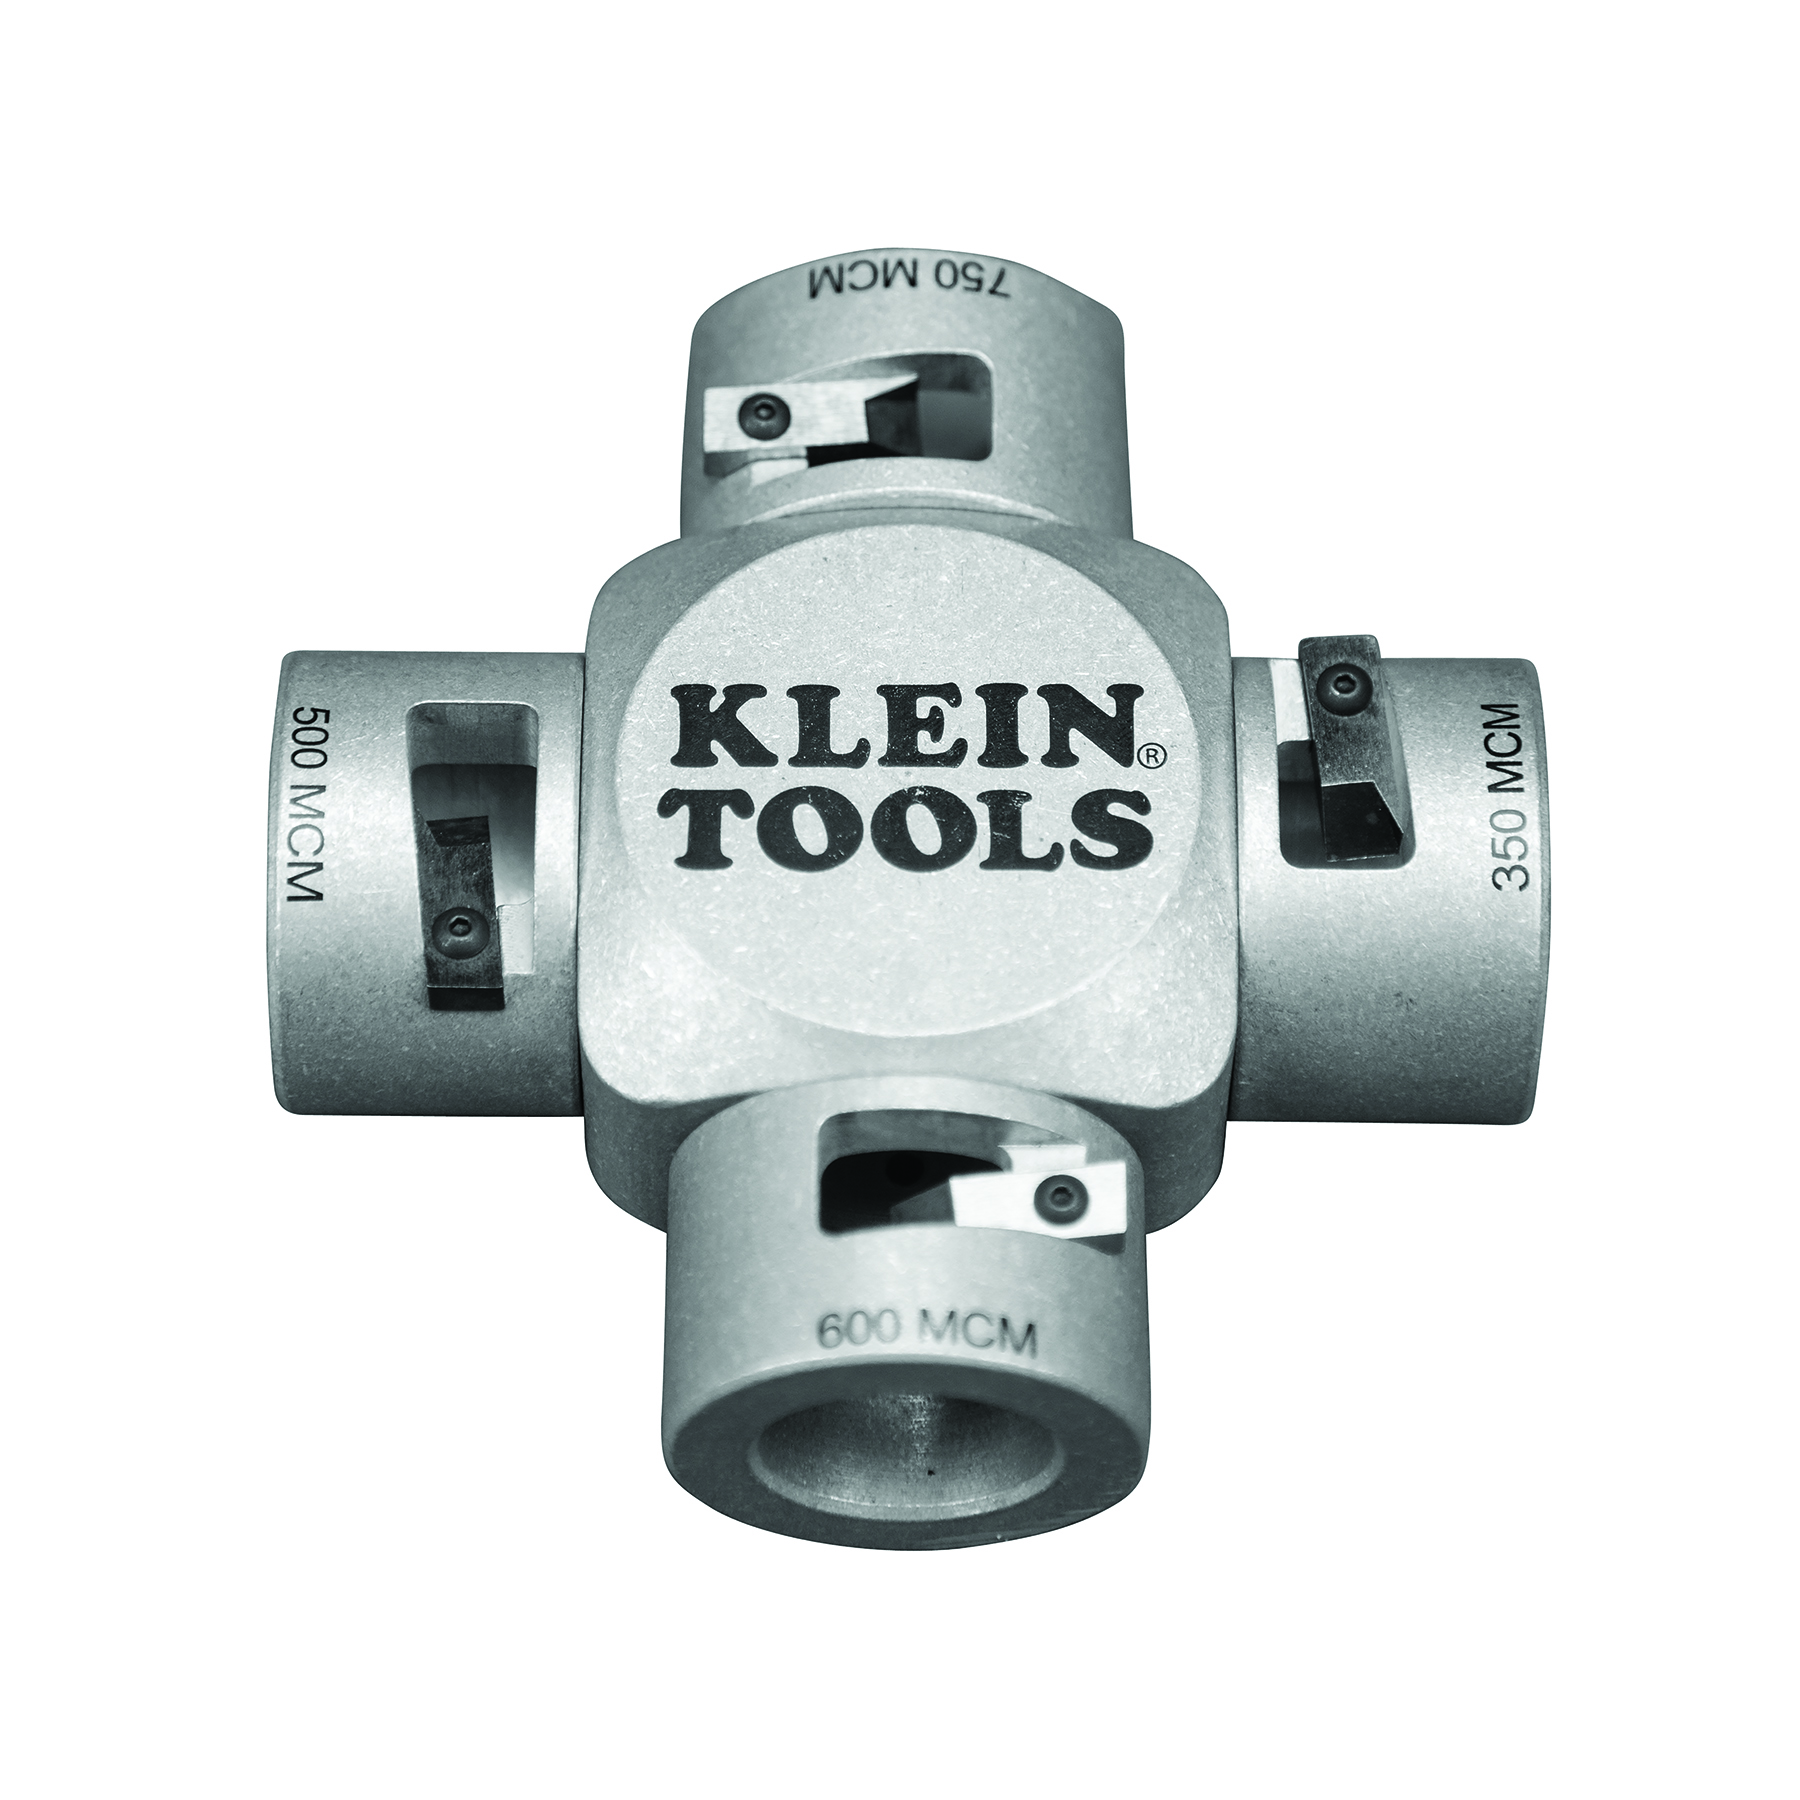 Large Cable Stripper (750 - 350 MCM) - 21050 | Klein Tools - For ...